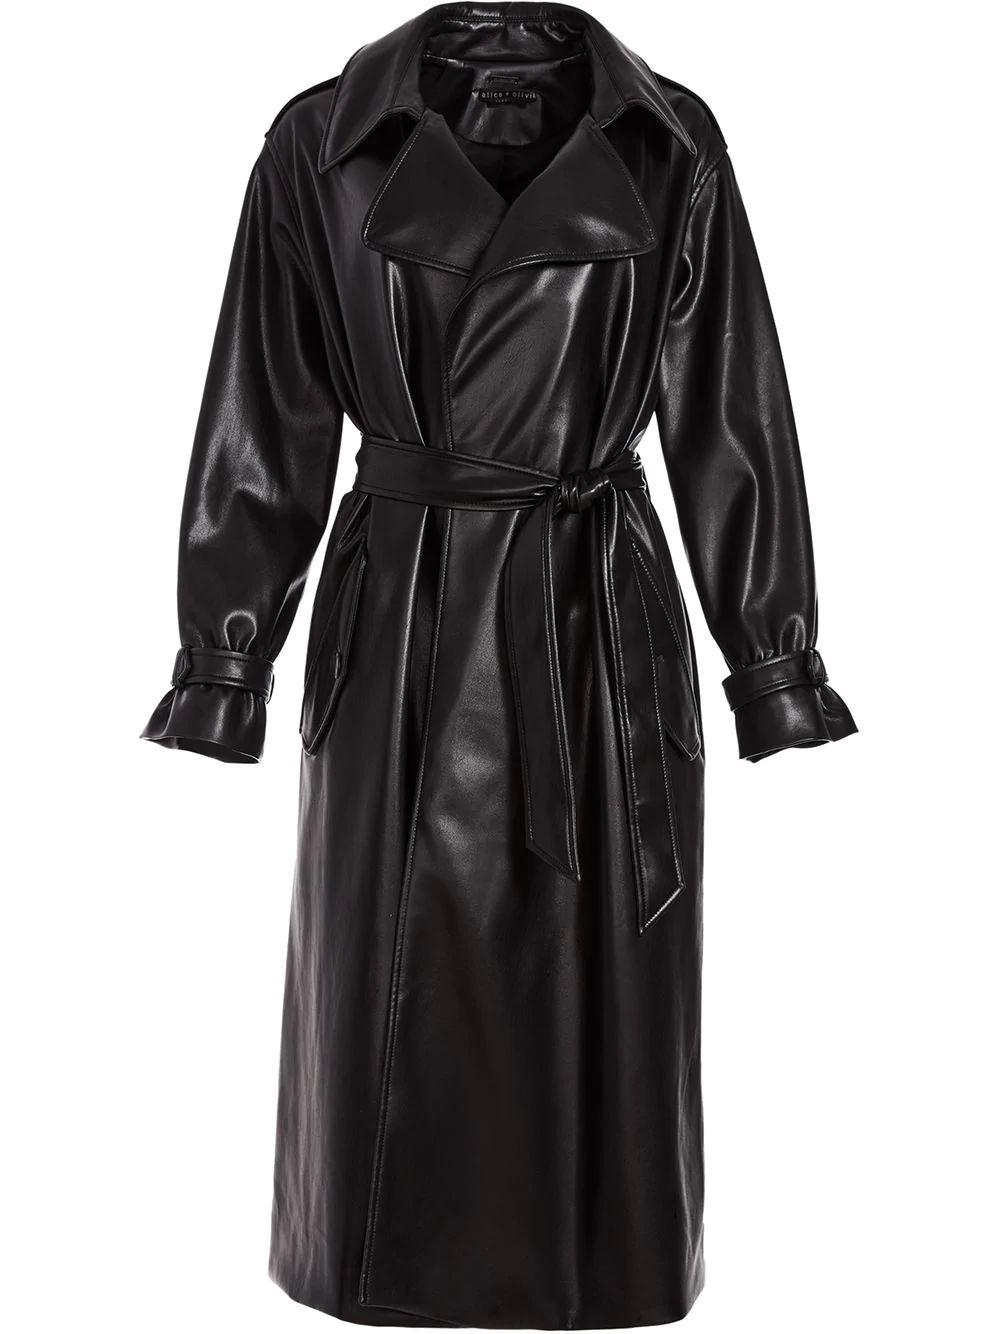 Nevada Vegan Leather Trench Item # CL000J16405